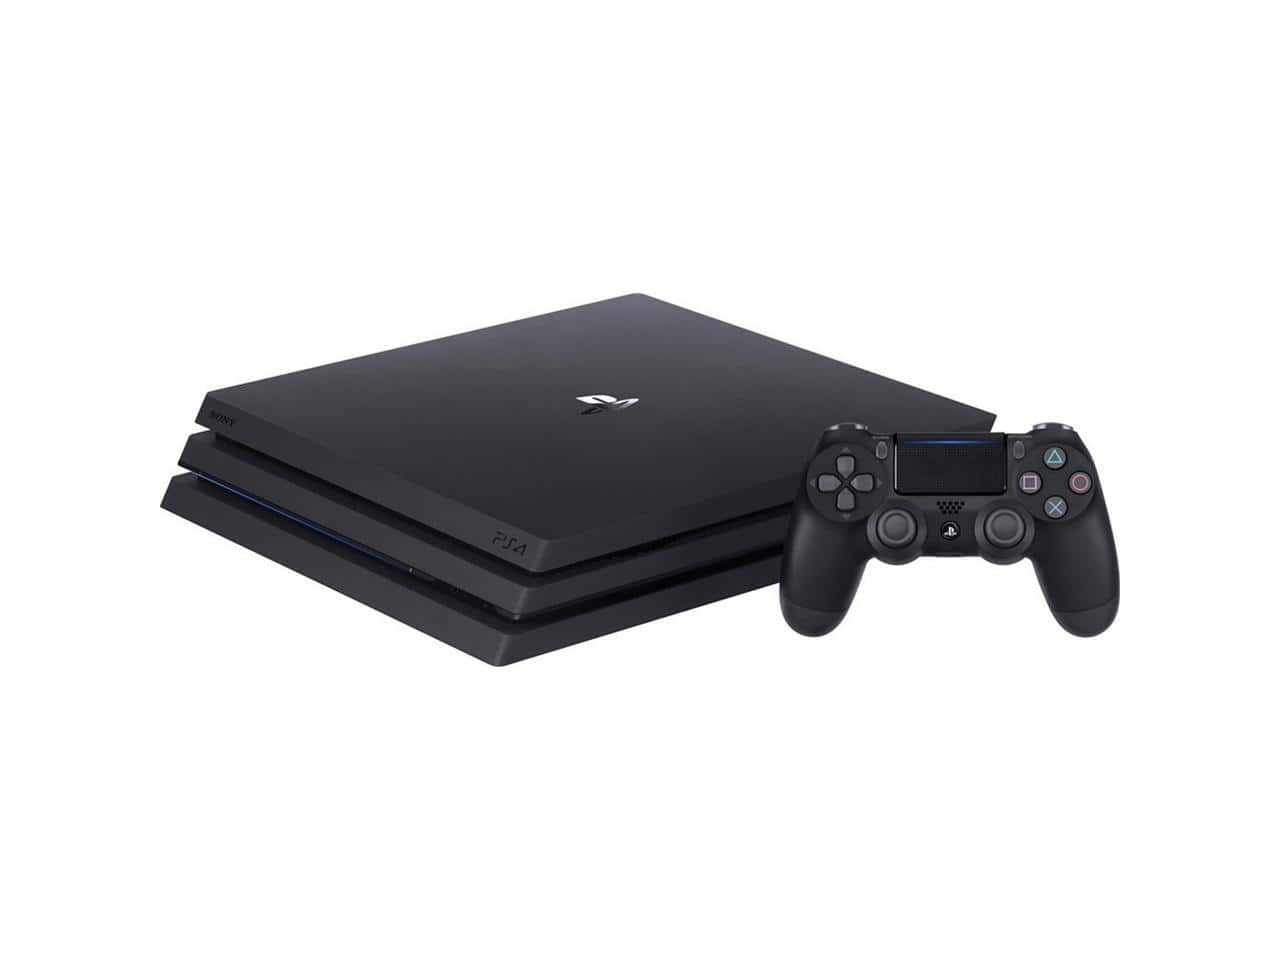 Sony PlayStation 4 Pro 1TB Video Game Console -Black - Refurbished $269.99 + Free Shipping